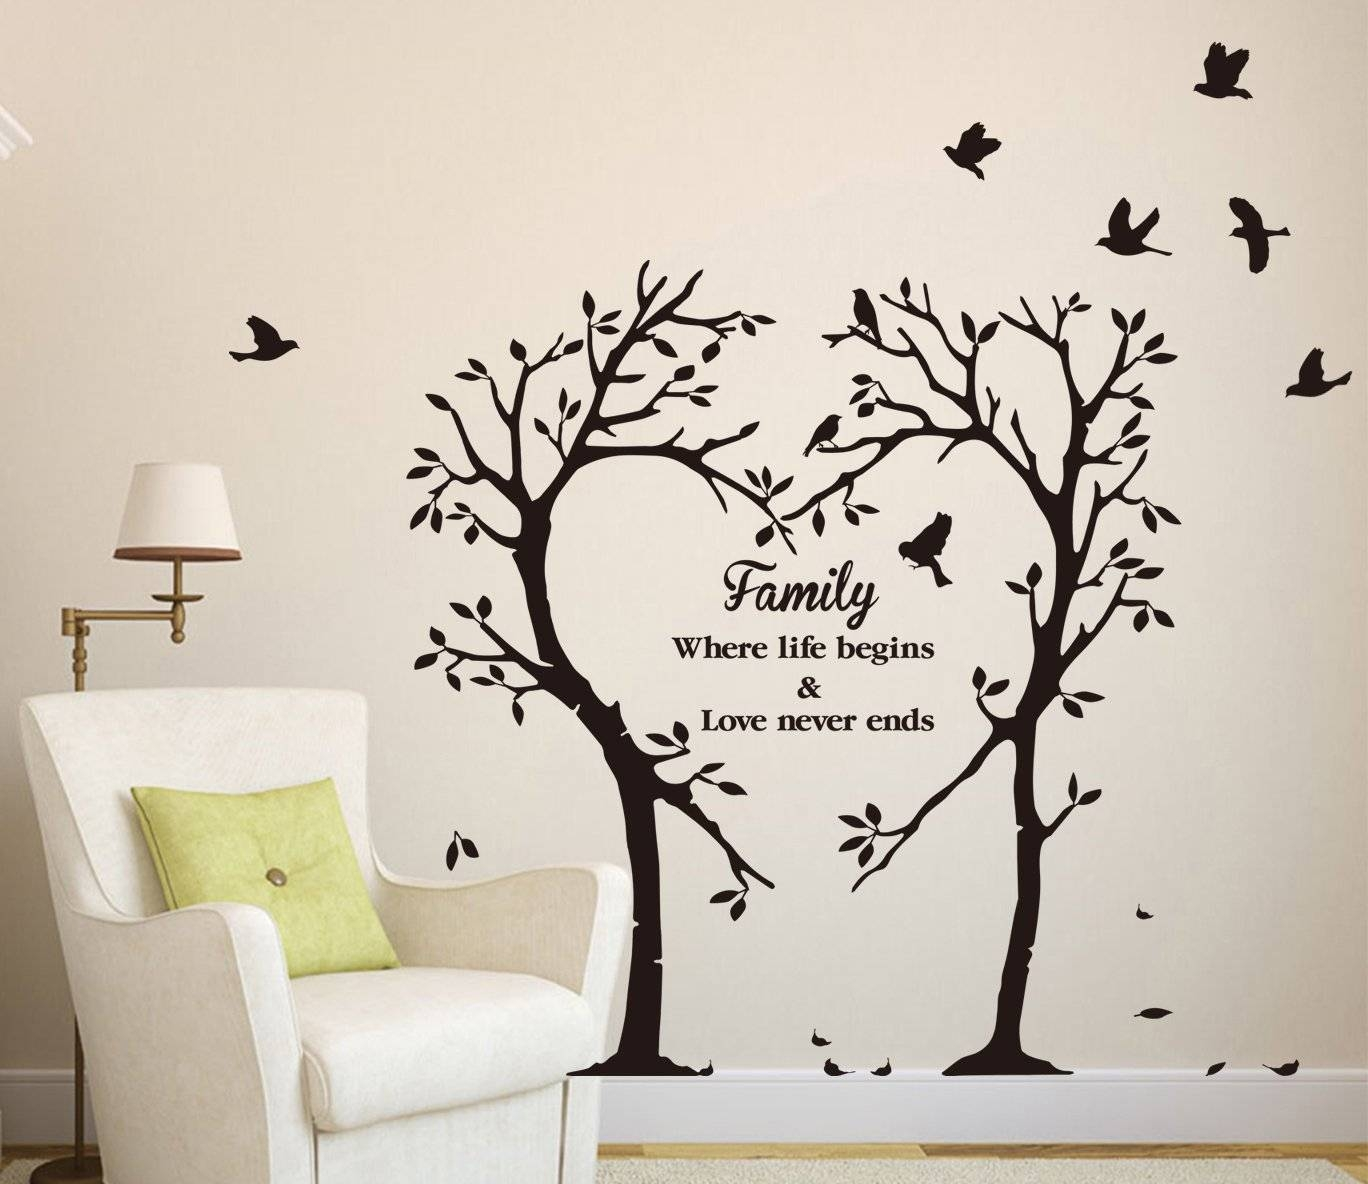 Wall Design: Family Wall Art Images (View 13 of 25)